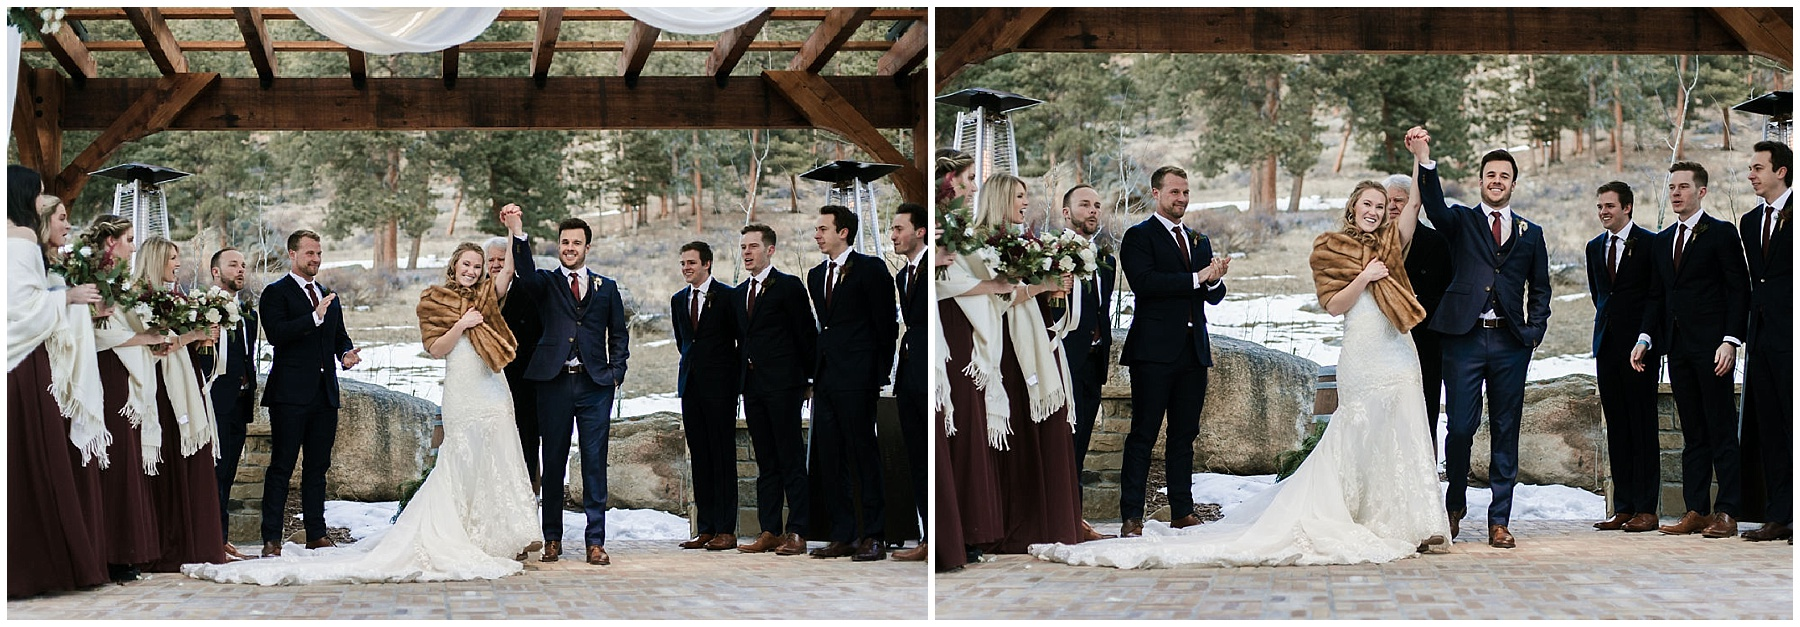 Katesalleyphotography-442_Haley and Dan get married in Estes Park.jpg